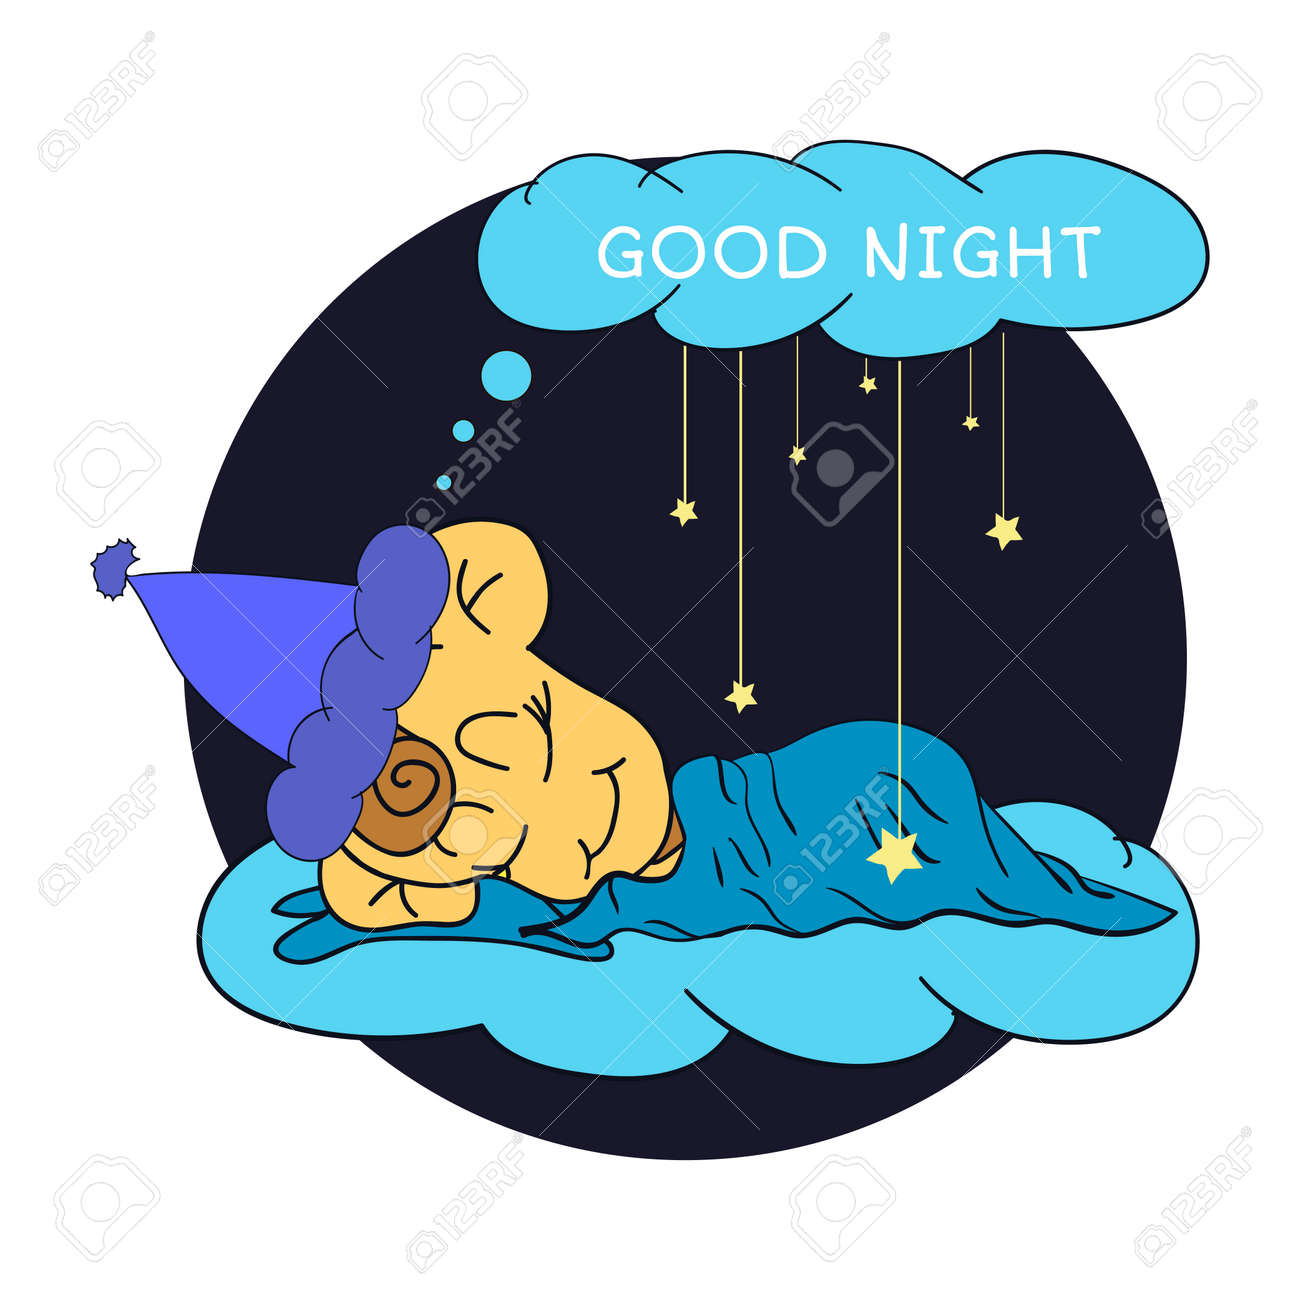 5 840 good night stock illustrations cliparts and royalty free rh 123rf com good night clip art animals good night clip art animals